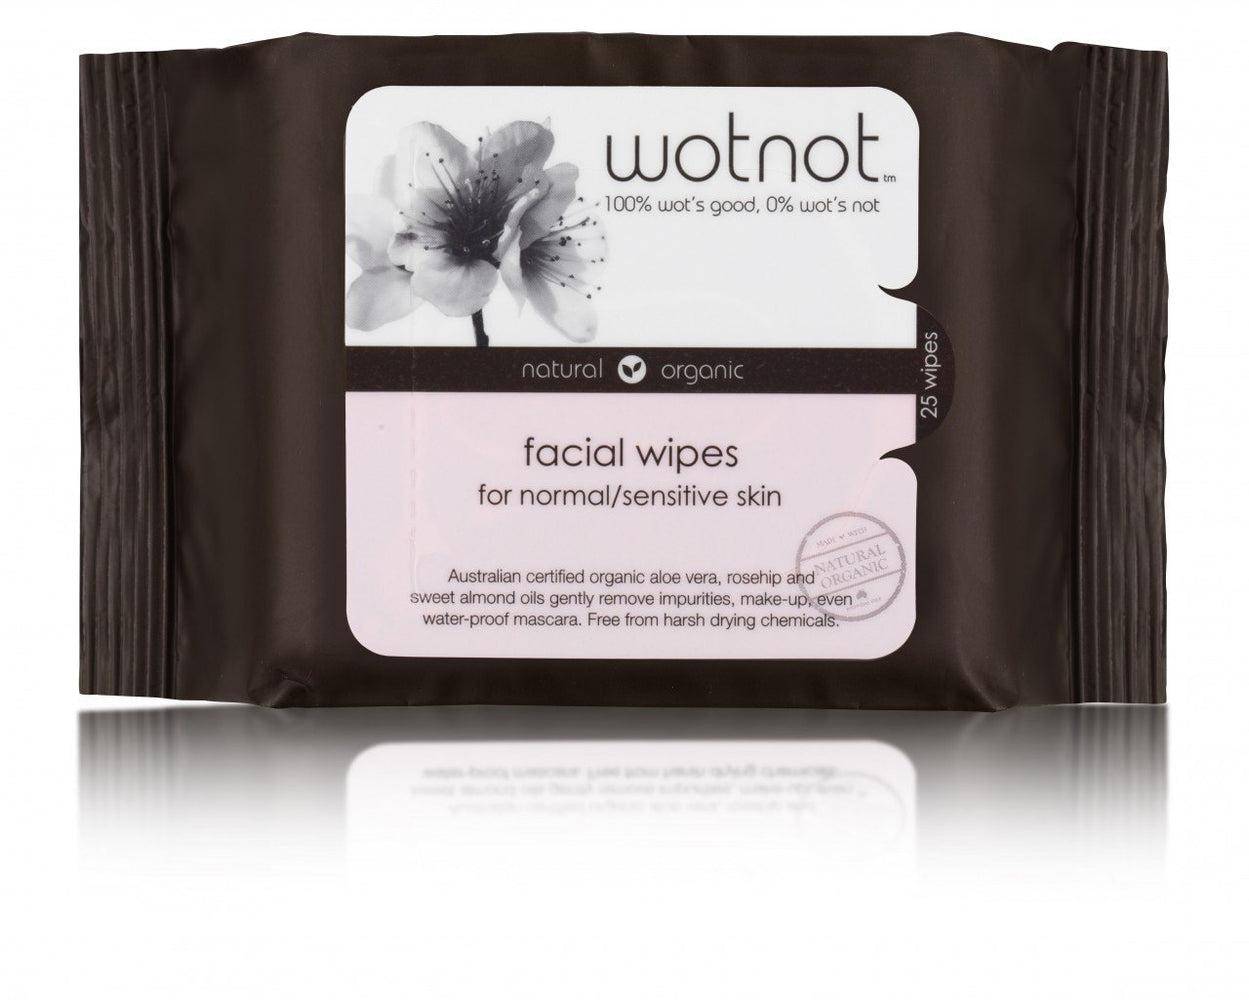 WOTNOT Natural Organic Facial Wipes - Naked Baby Eco Boutique - New Zealand Eco Friendly Organic Baby Products